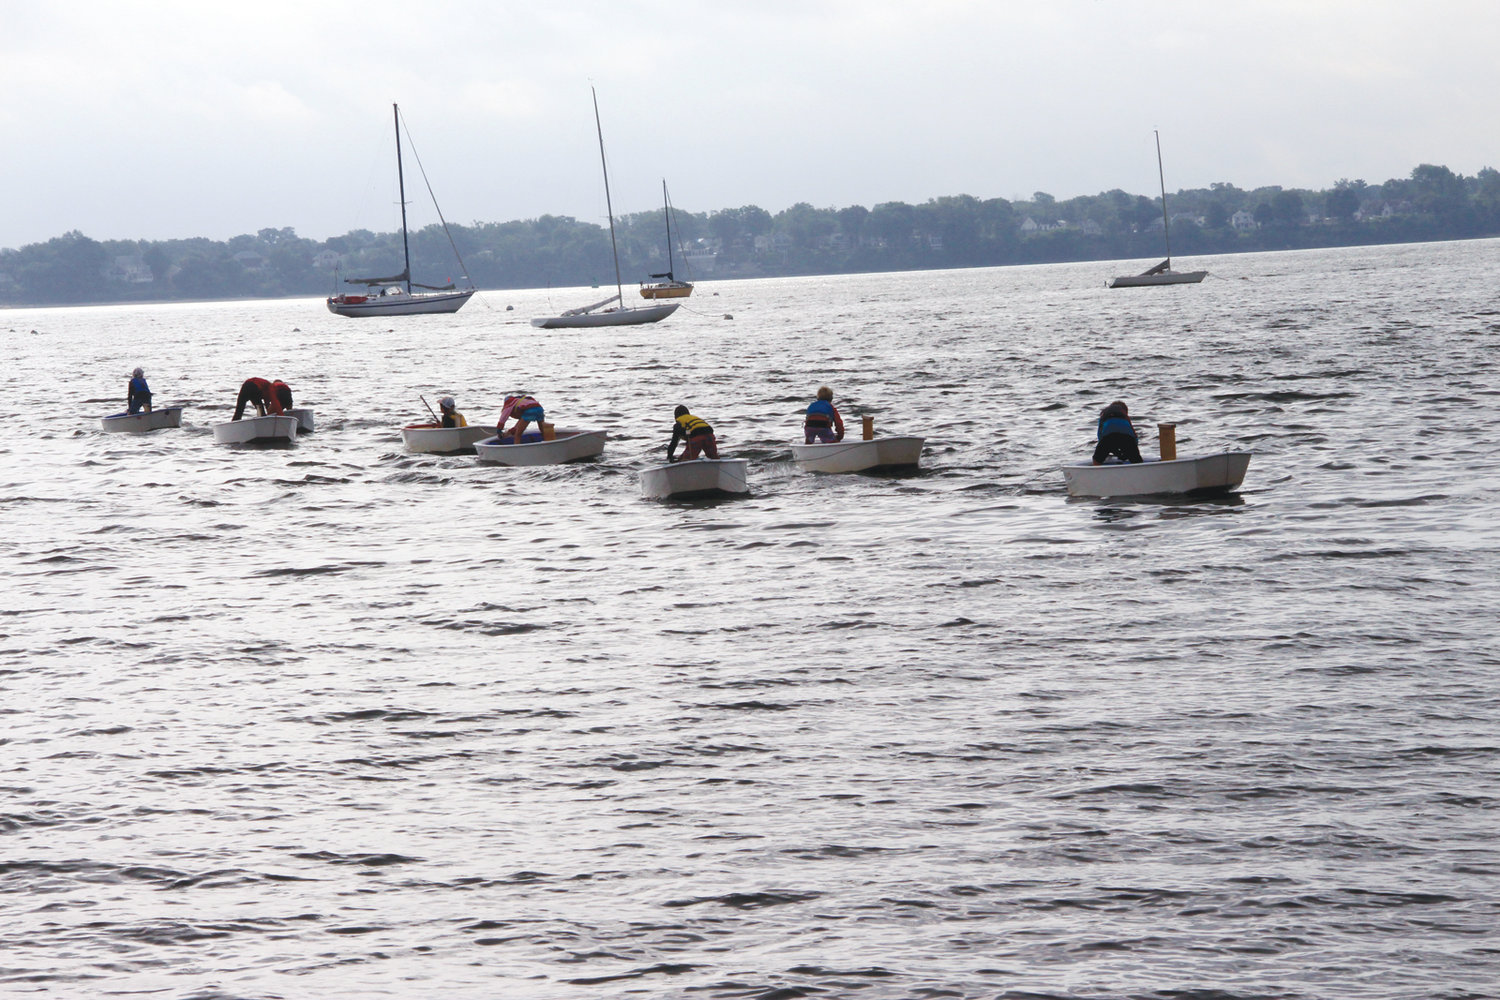 BY SEA: Barrington Yacht Club sailors arrived by sea to compete in the regatta.